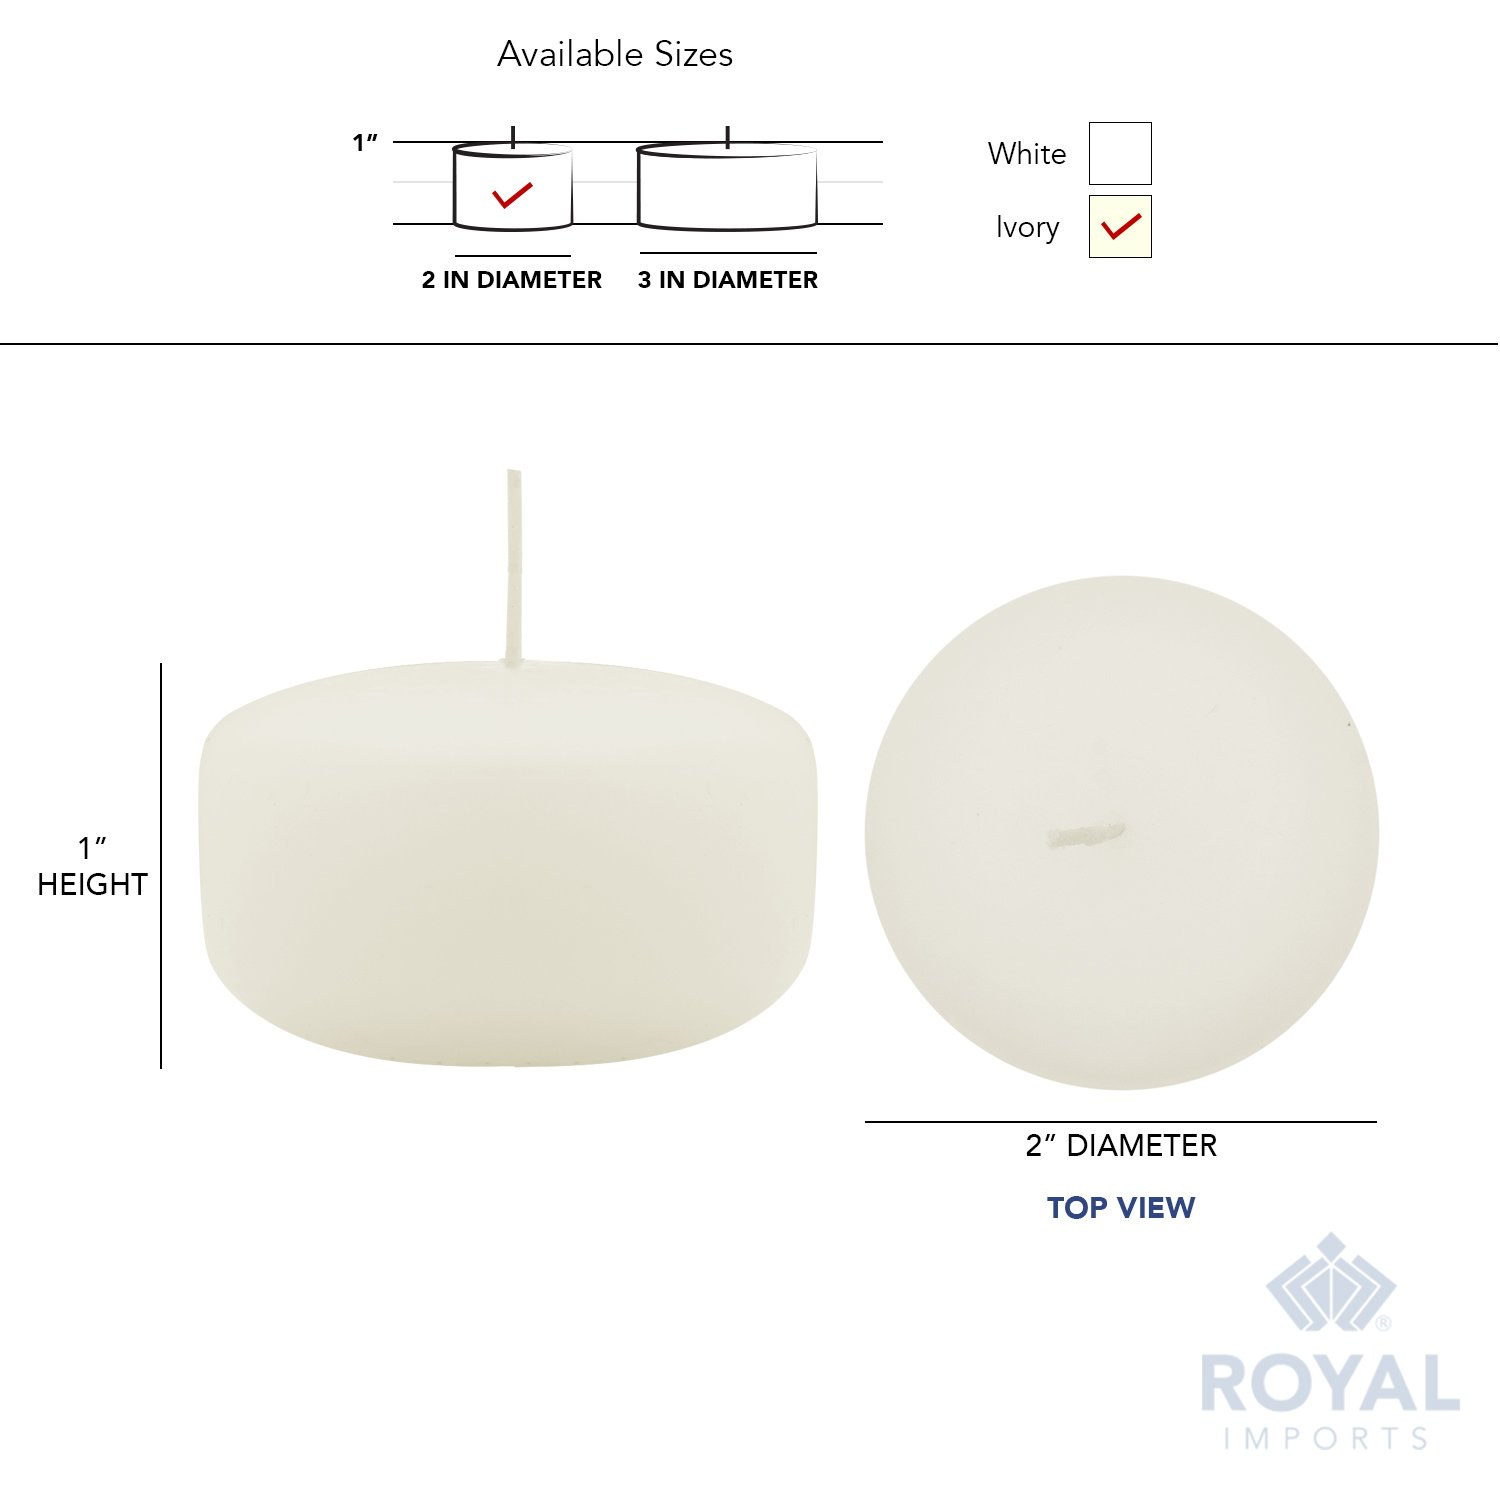 Royal Imports Floating disc Candles for Wedding, Birthday, Holiday & Home Decoration, 2 Inch, Ivory Wax, Set of 72 by Royal Imports (Image #6)